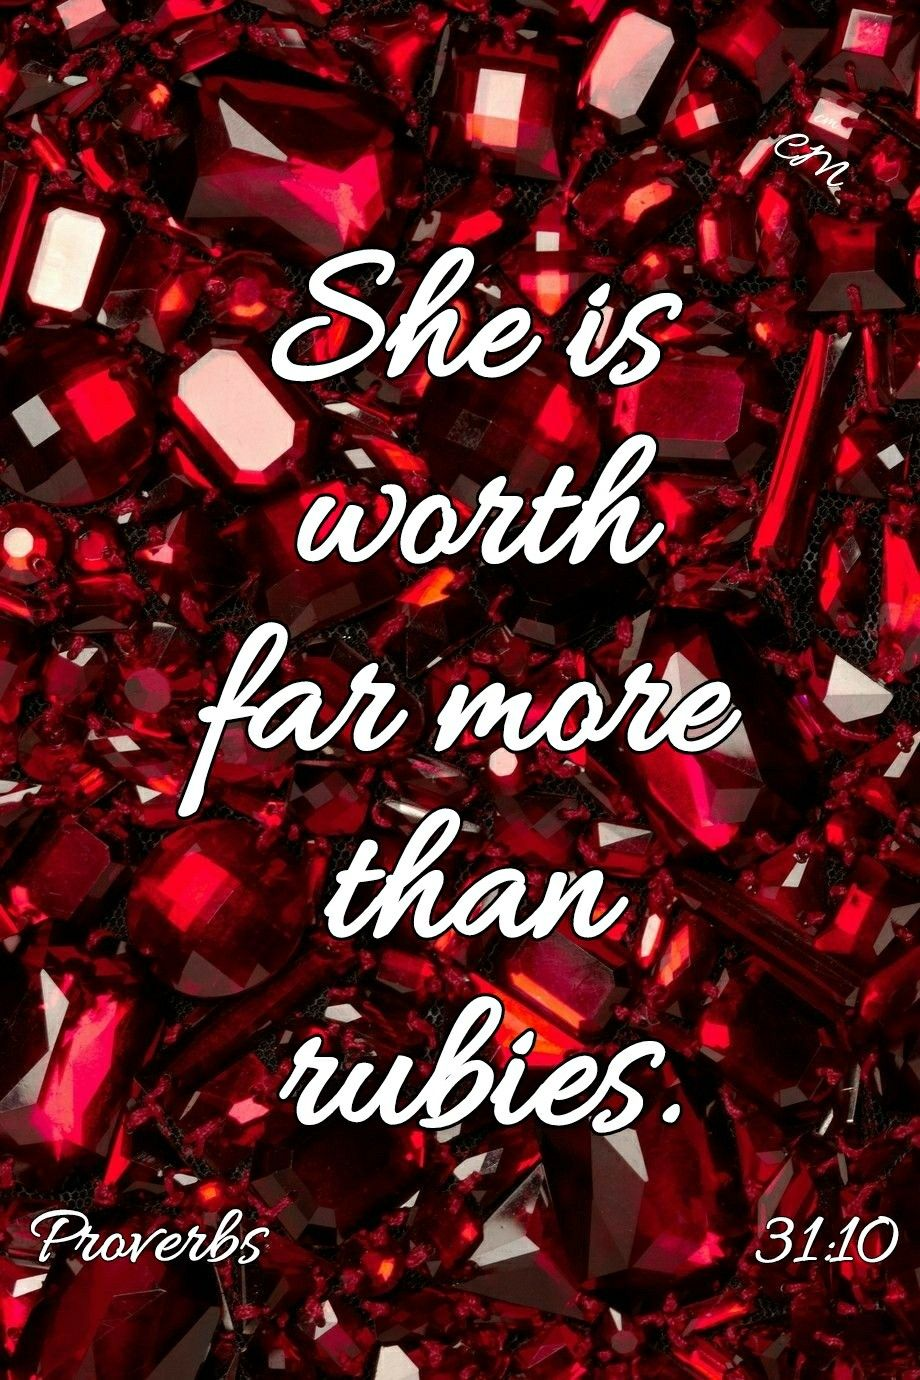 She is worth more than rubies tattoo